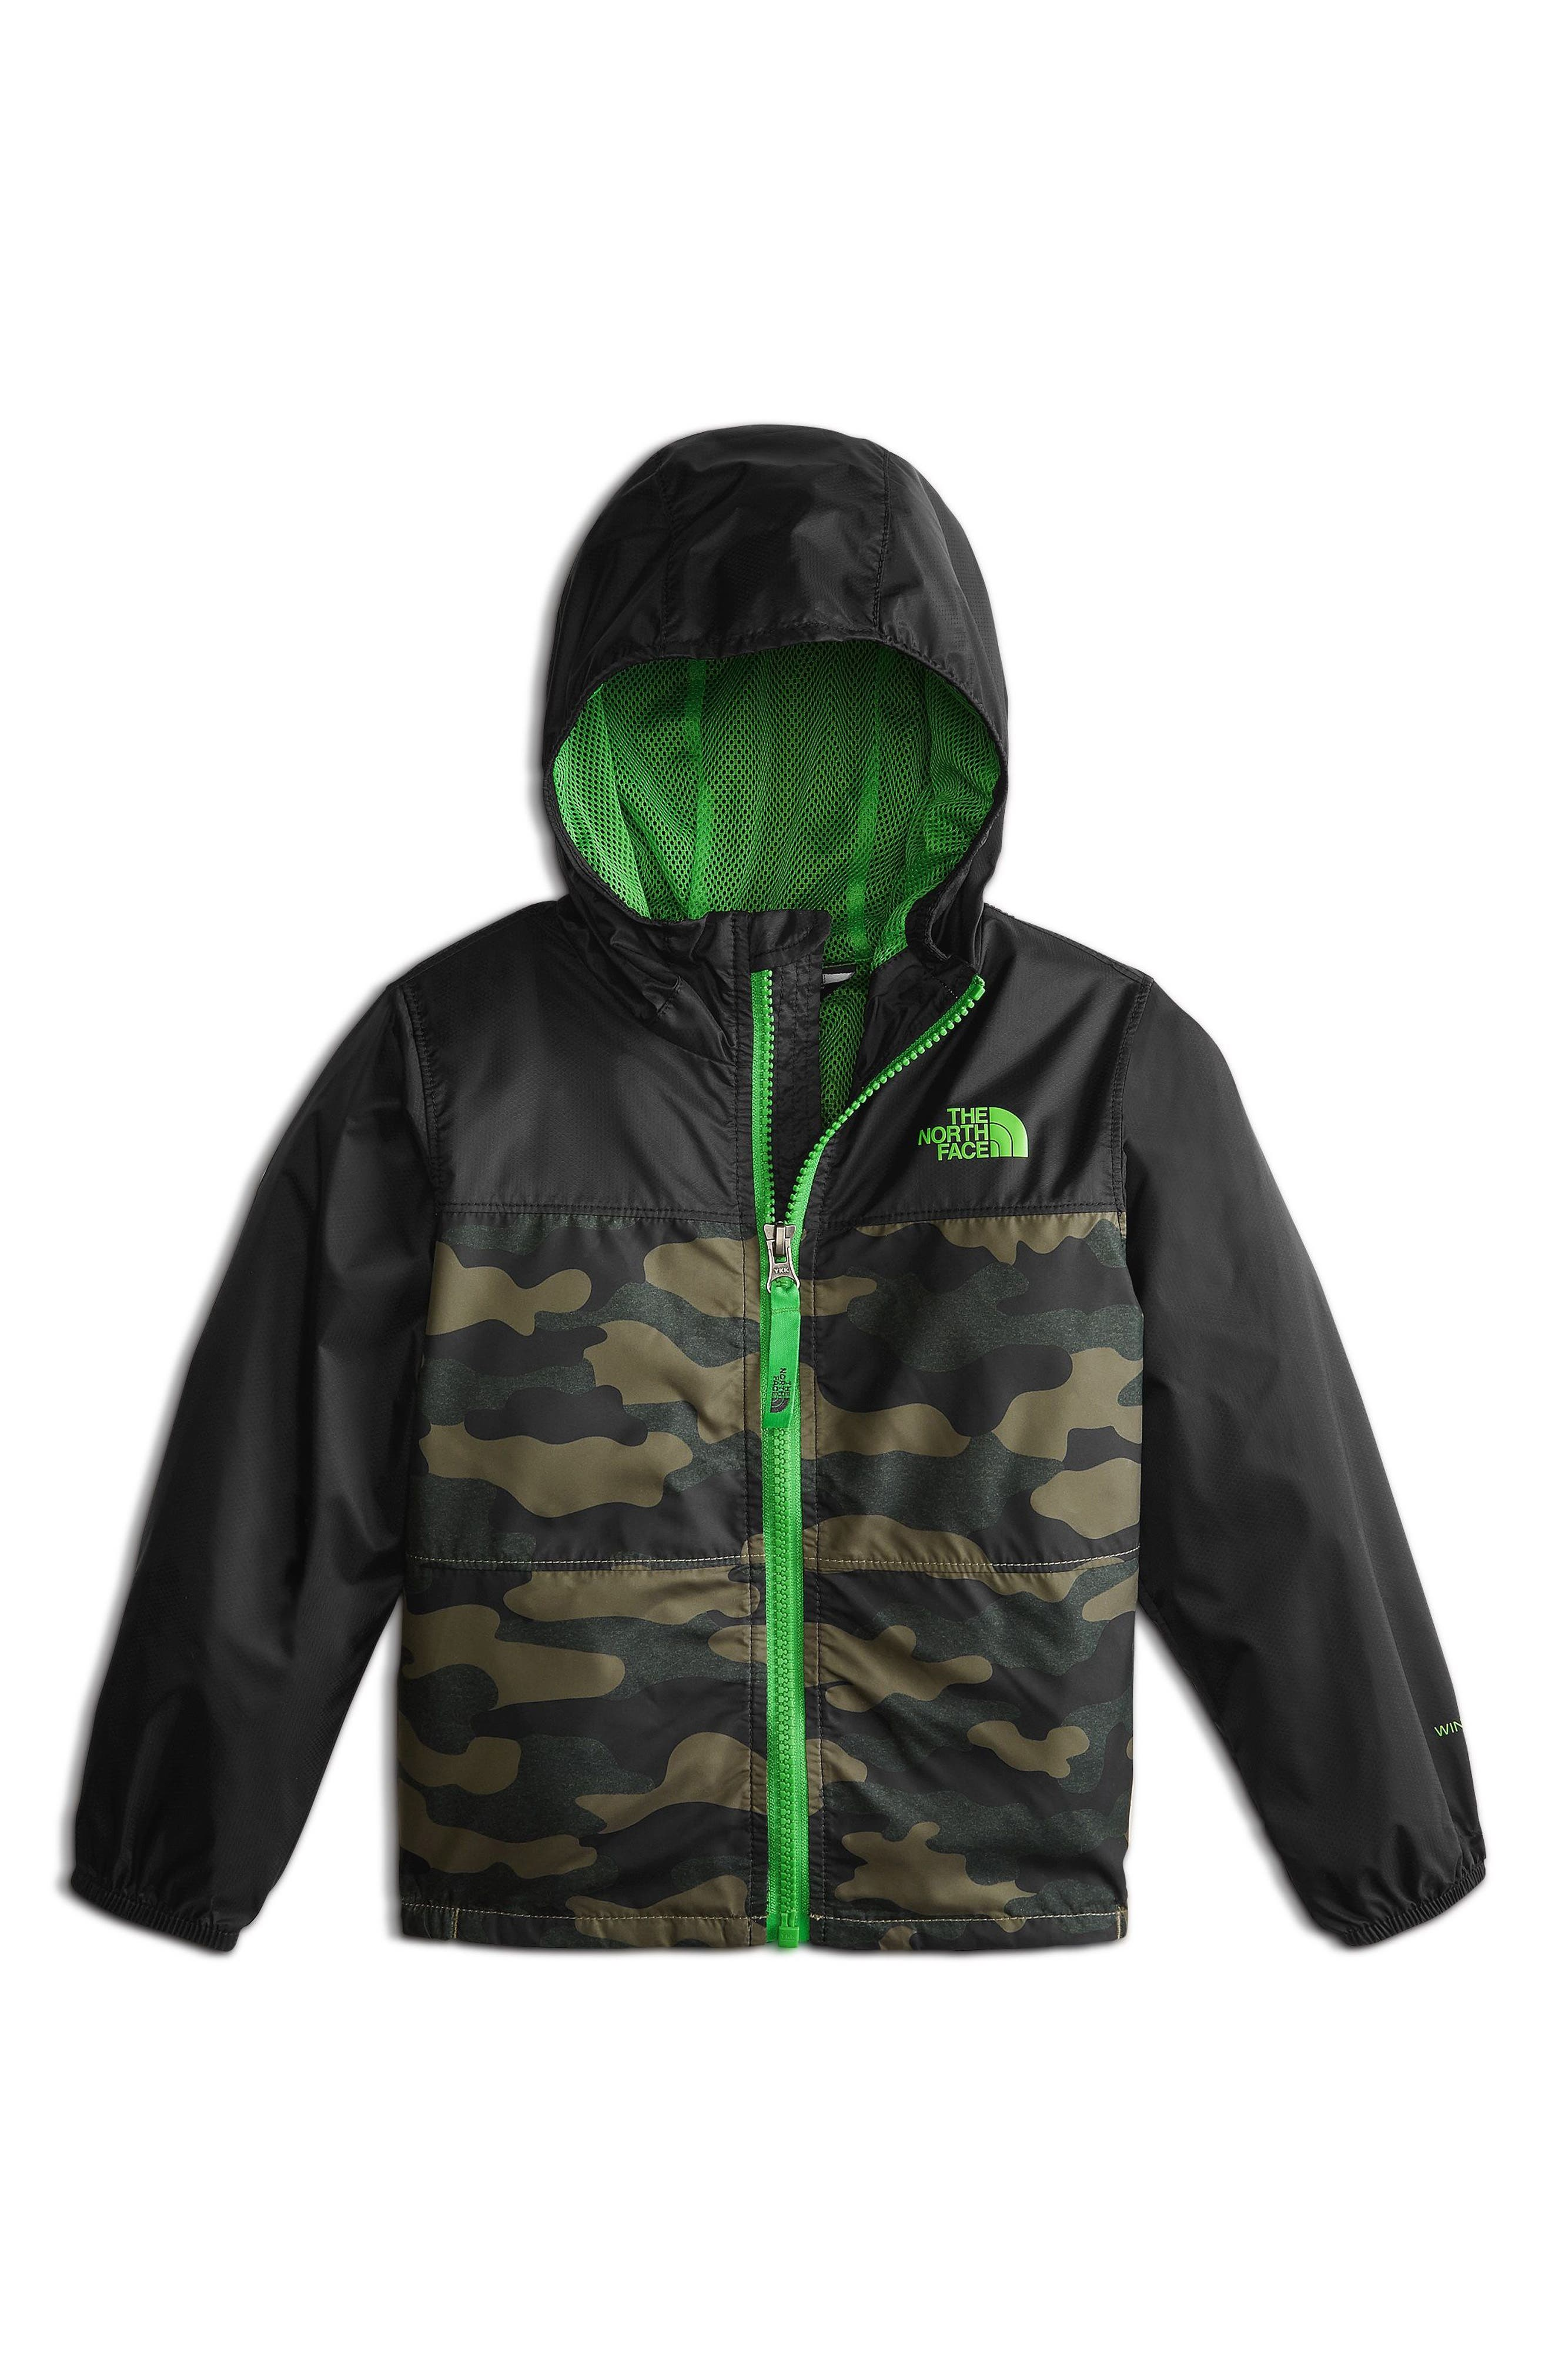 Flurry Hooded Windbreaker Jacket,                         Main,                         color, Burnt Olive Green/ Camo